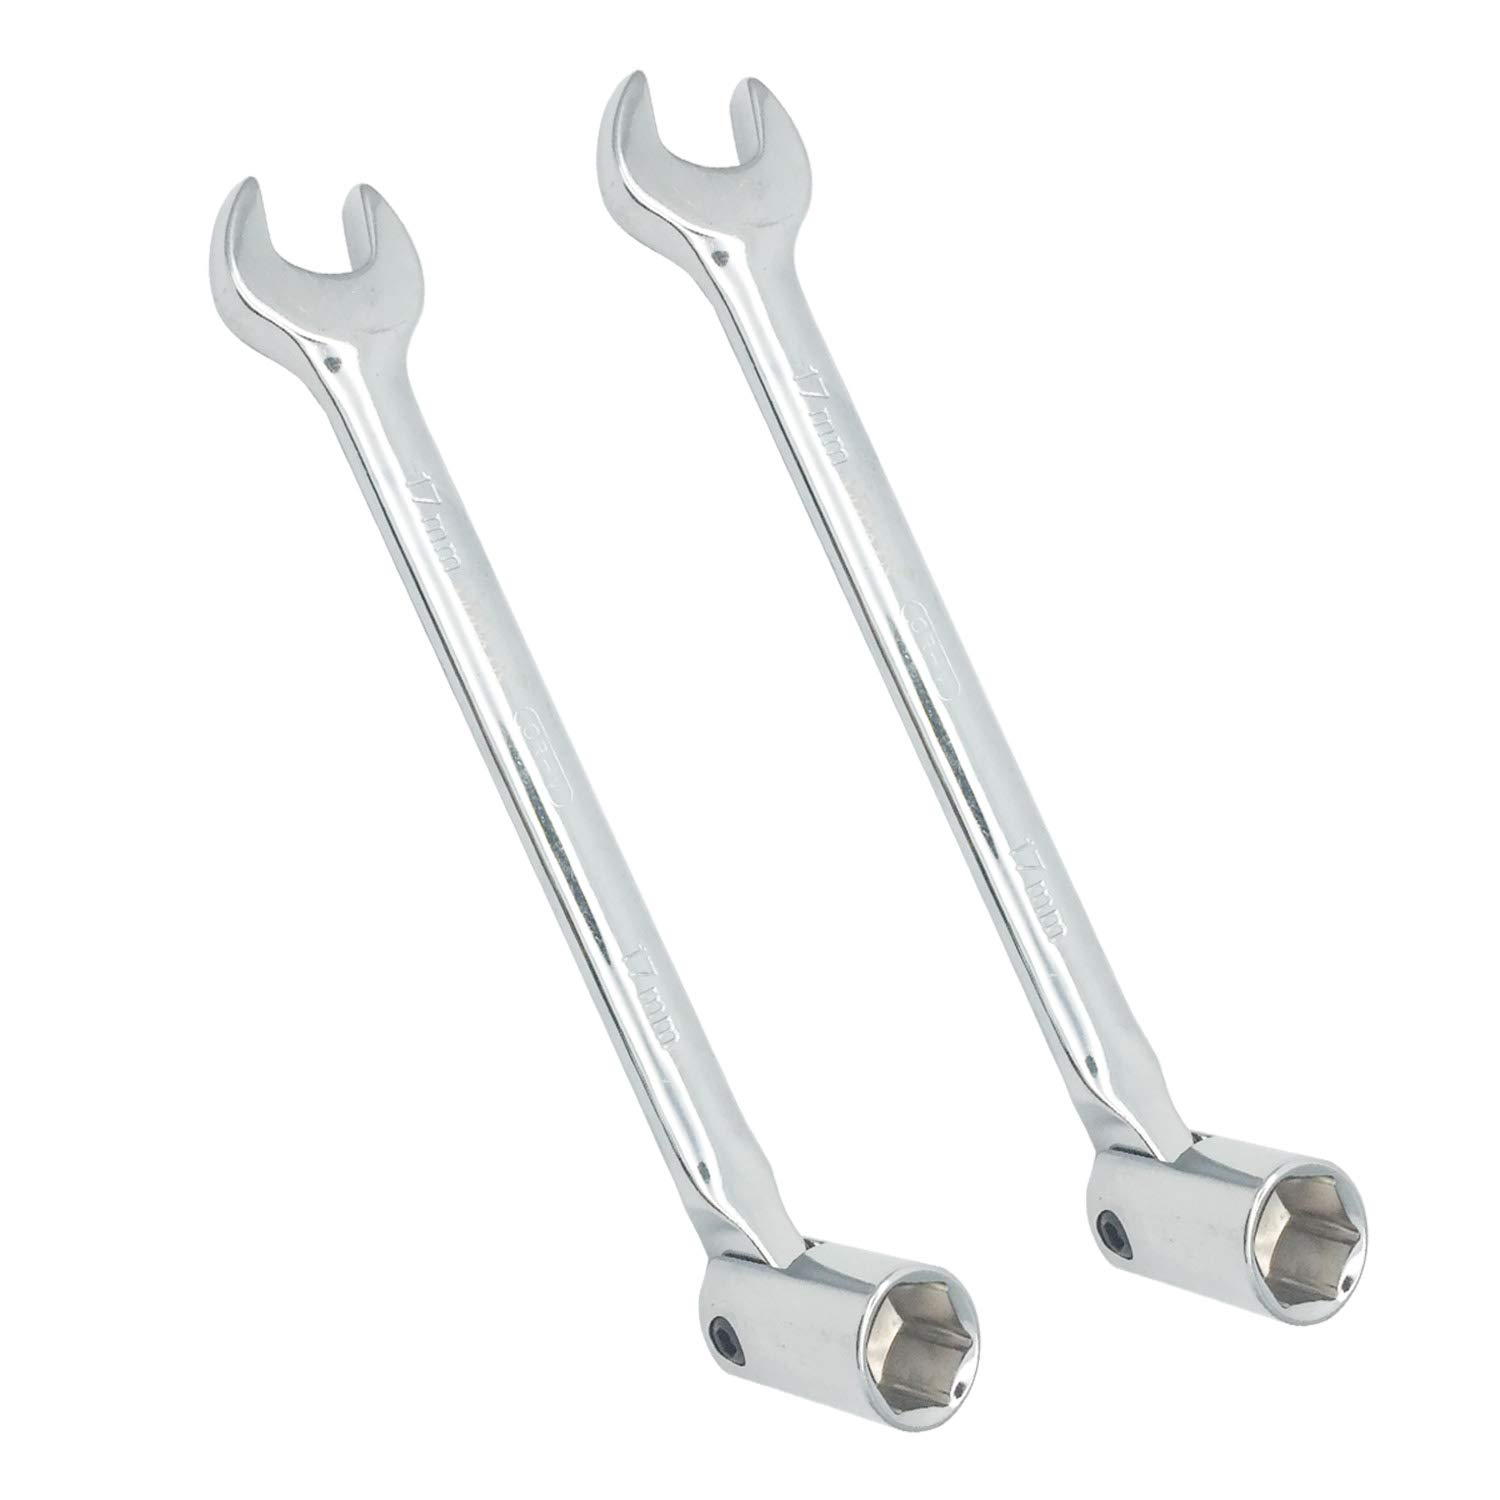 14mm COMOK Metal Double Headed Flex-Head Open End Hex Socket End Wrench Combination Spanner Silver Tone